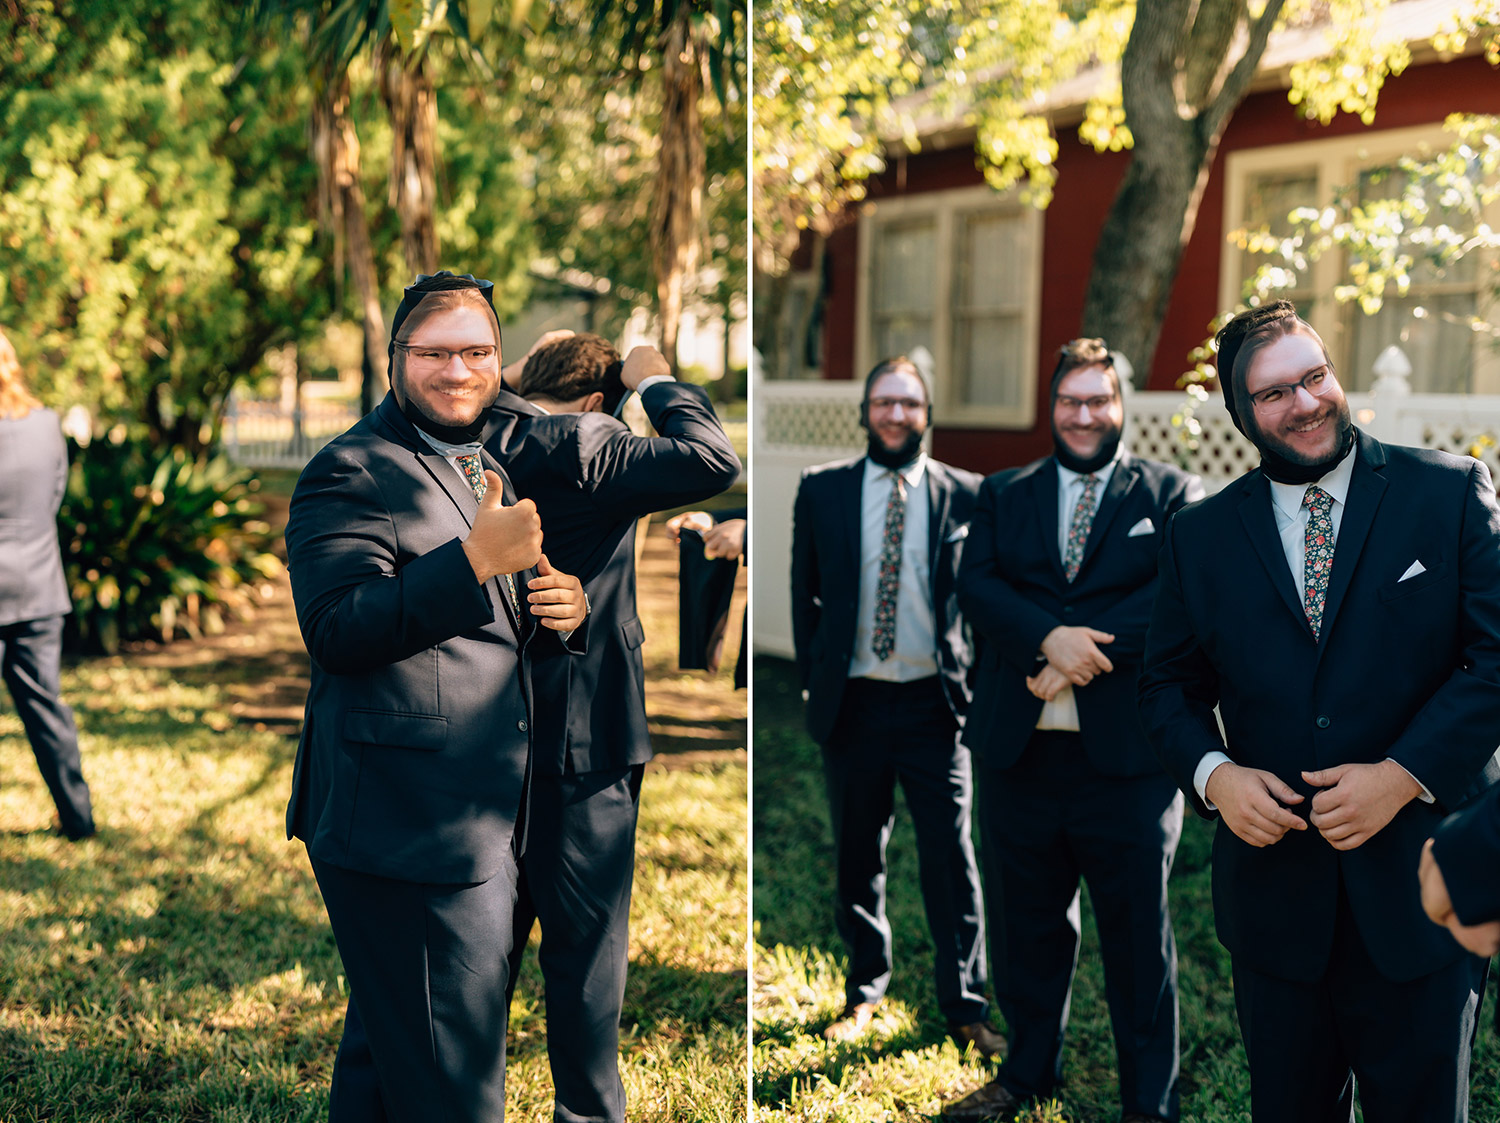 groomsmen play joke on groom during wedding at butler's courtyard